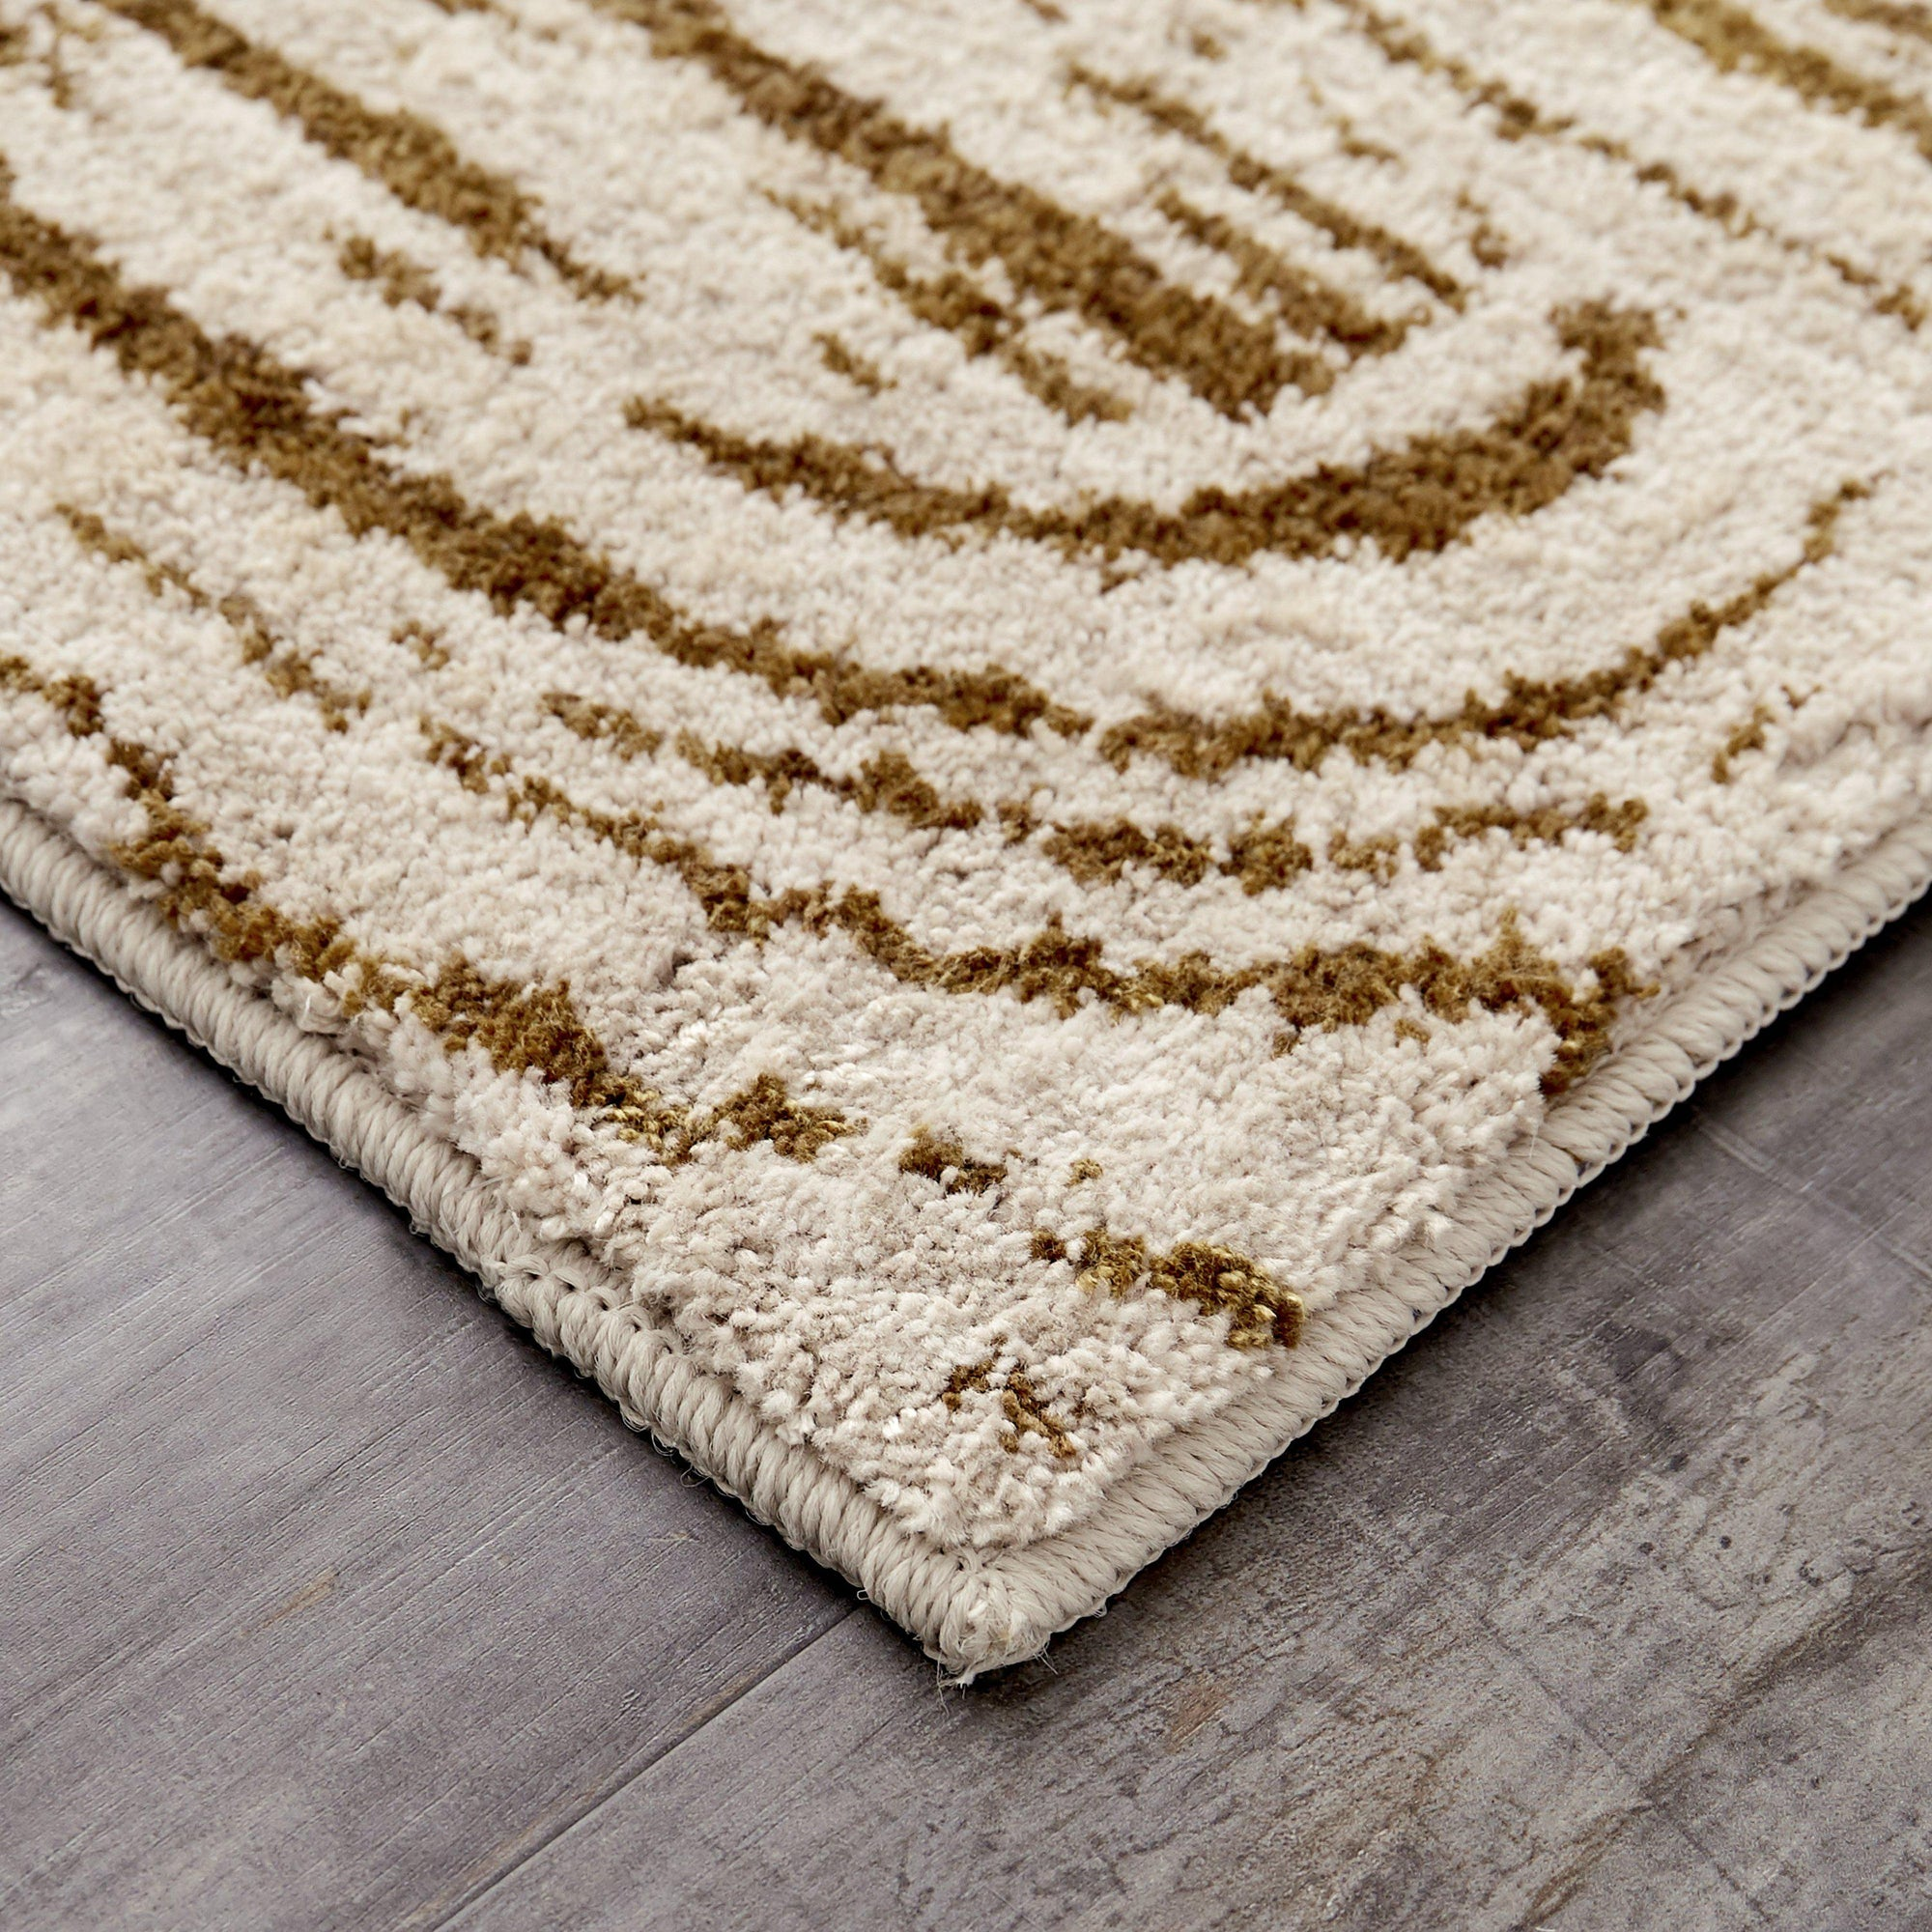 Artisan Equilibrium Brushed Gold by Scott Living Area Rug-Area Rug-Scott Living-2'x3'-The Rug Truck